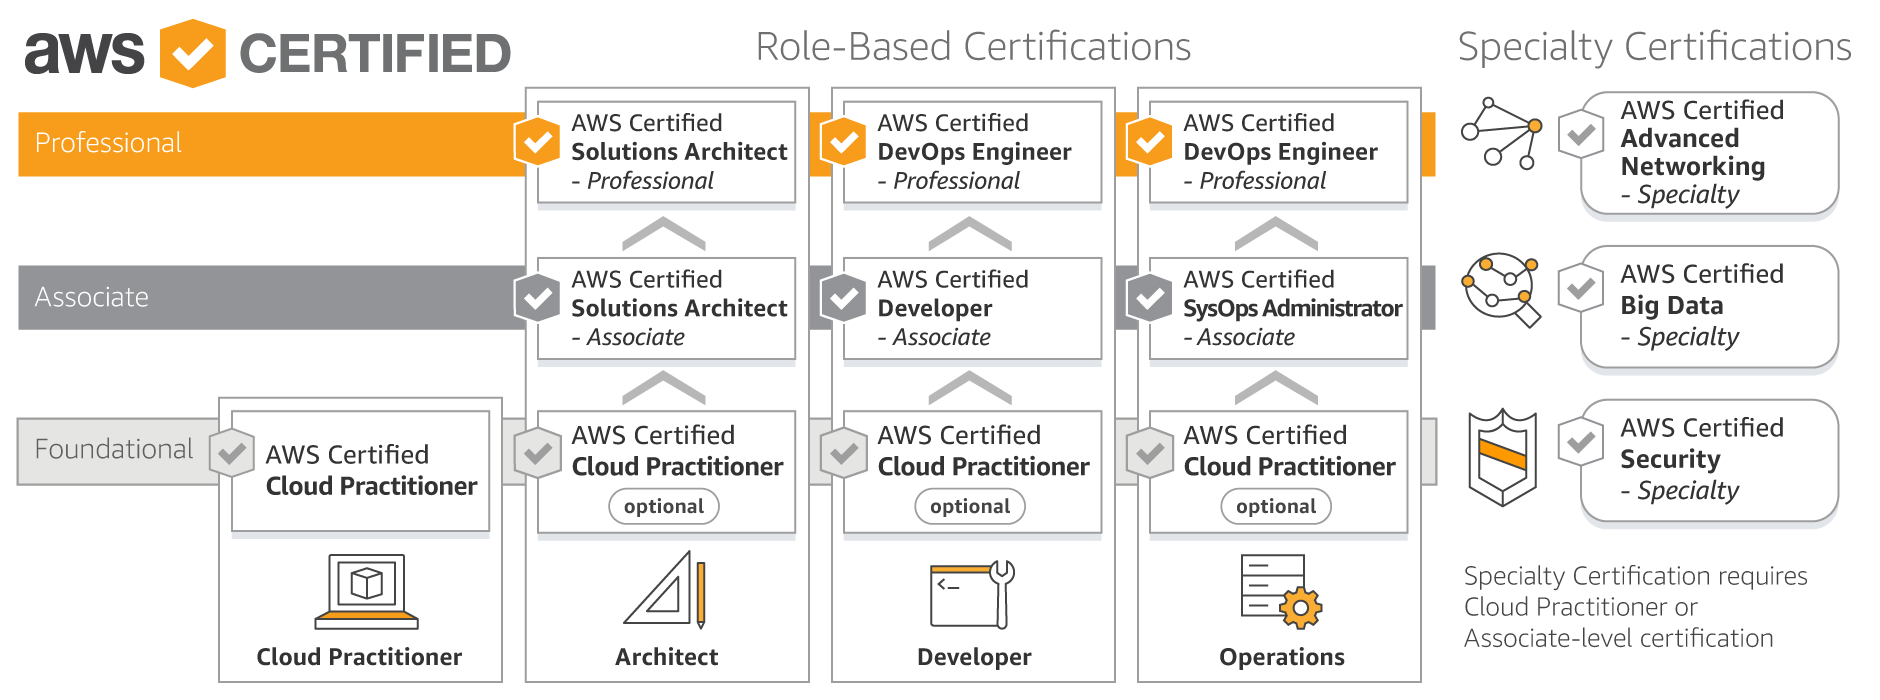 AWS Certification - AWS Cloud Computing Certification Program